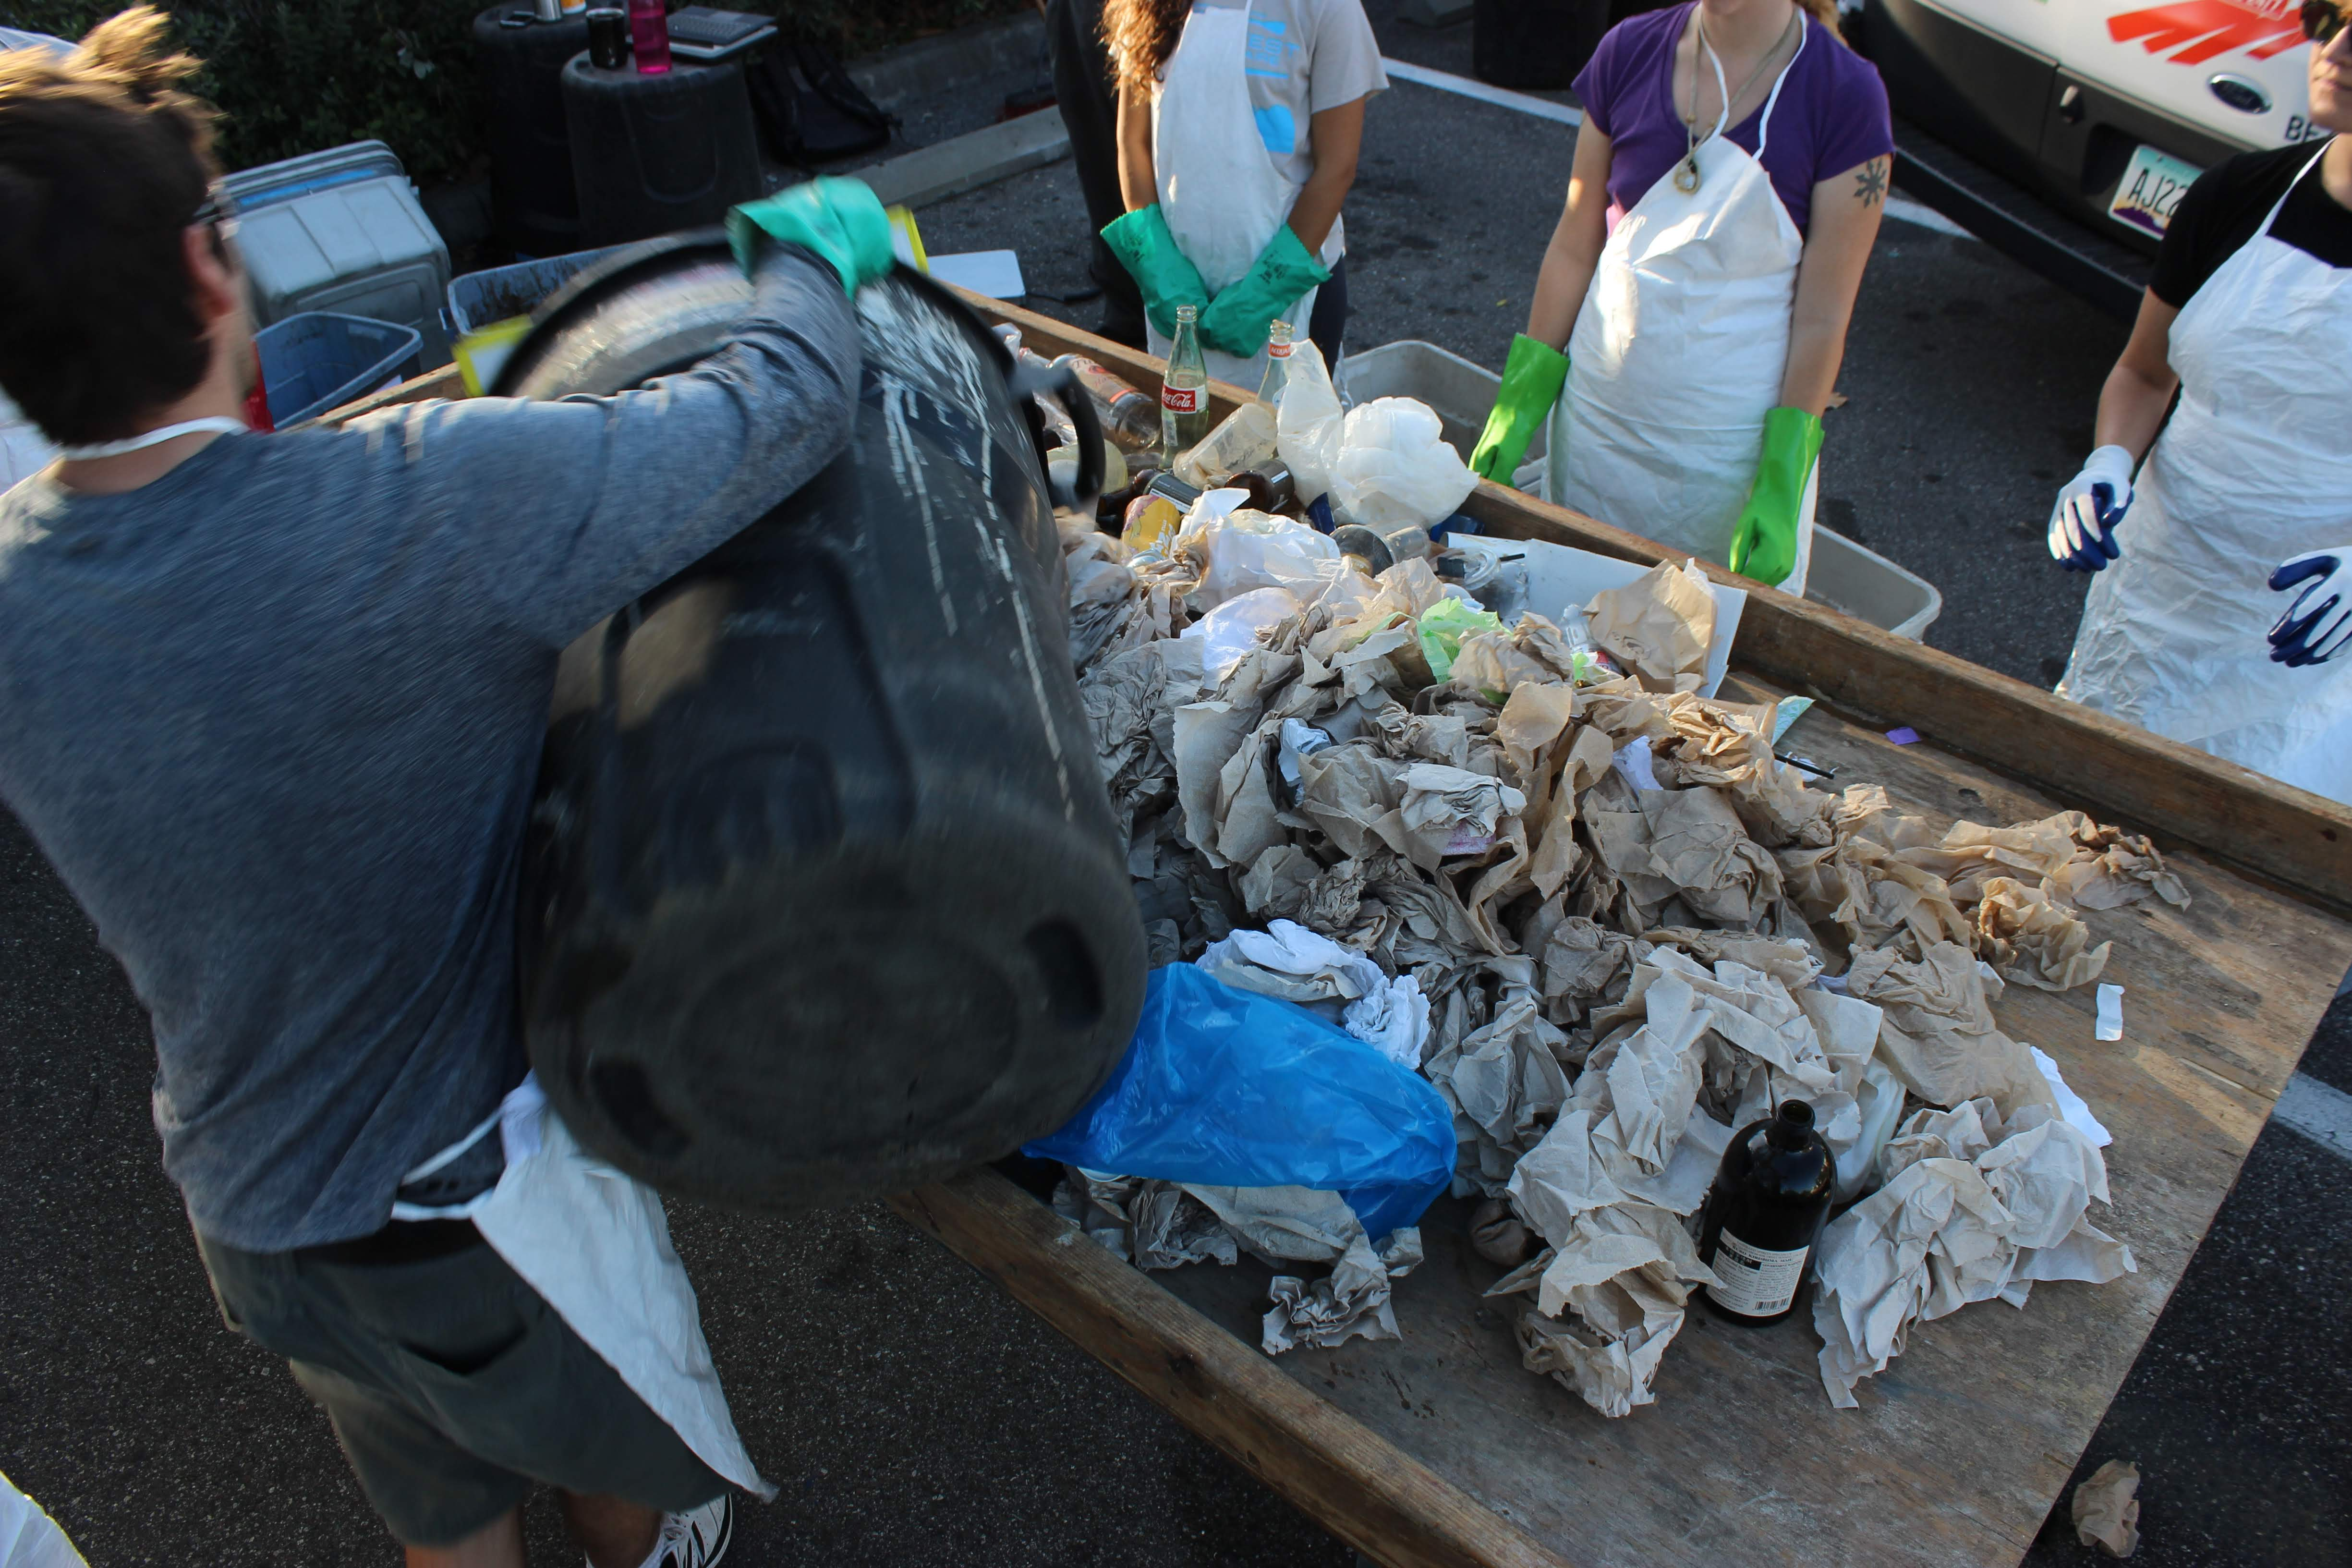 Recap: Conducting a Waste Audit at East End Market Orlando